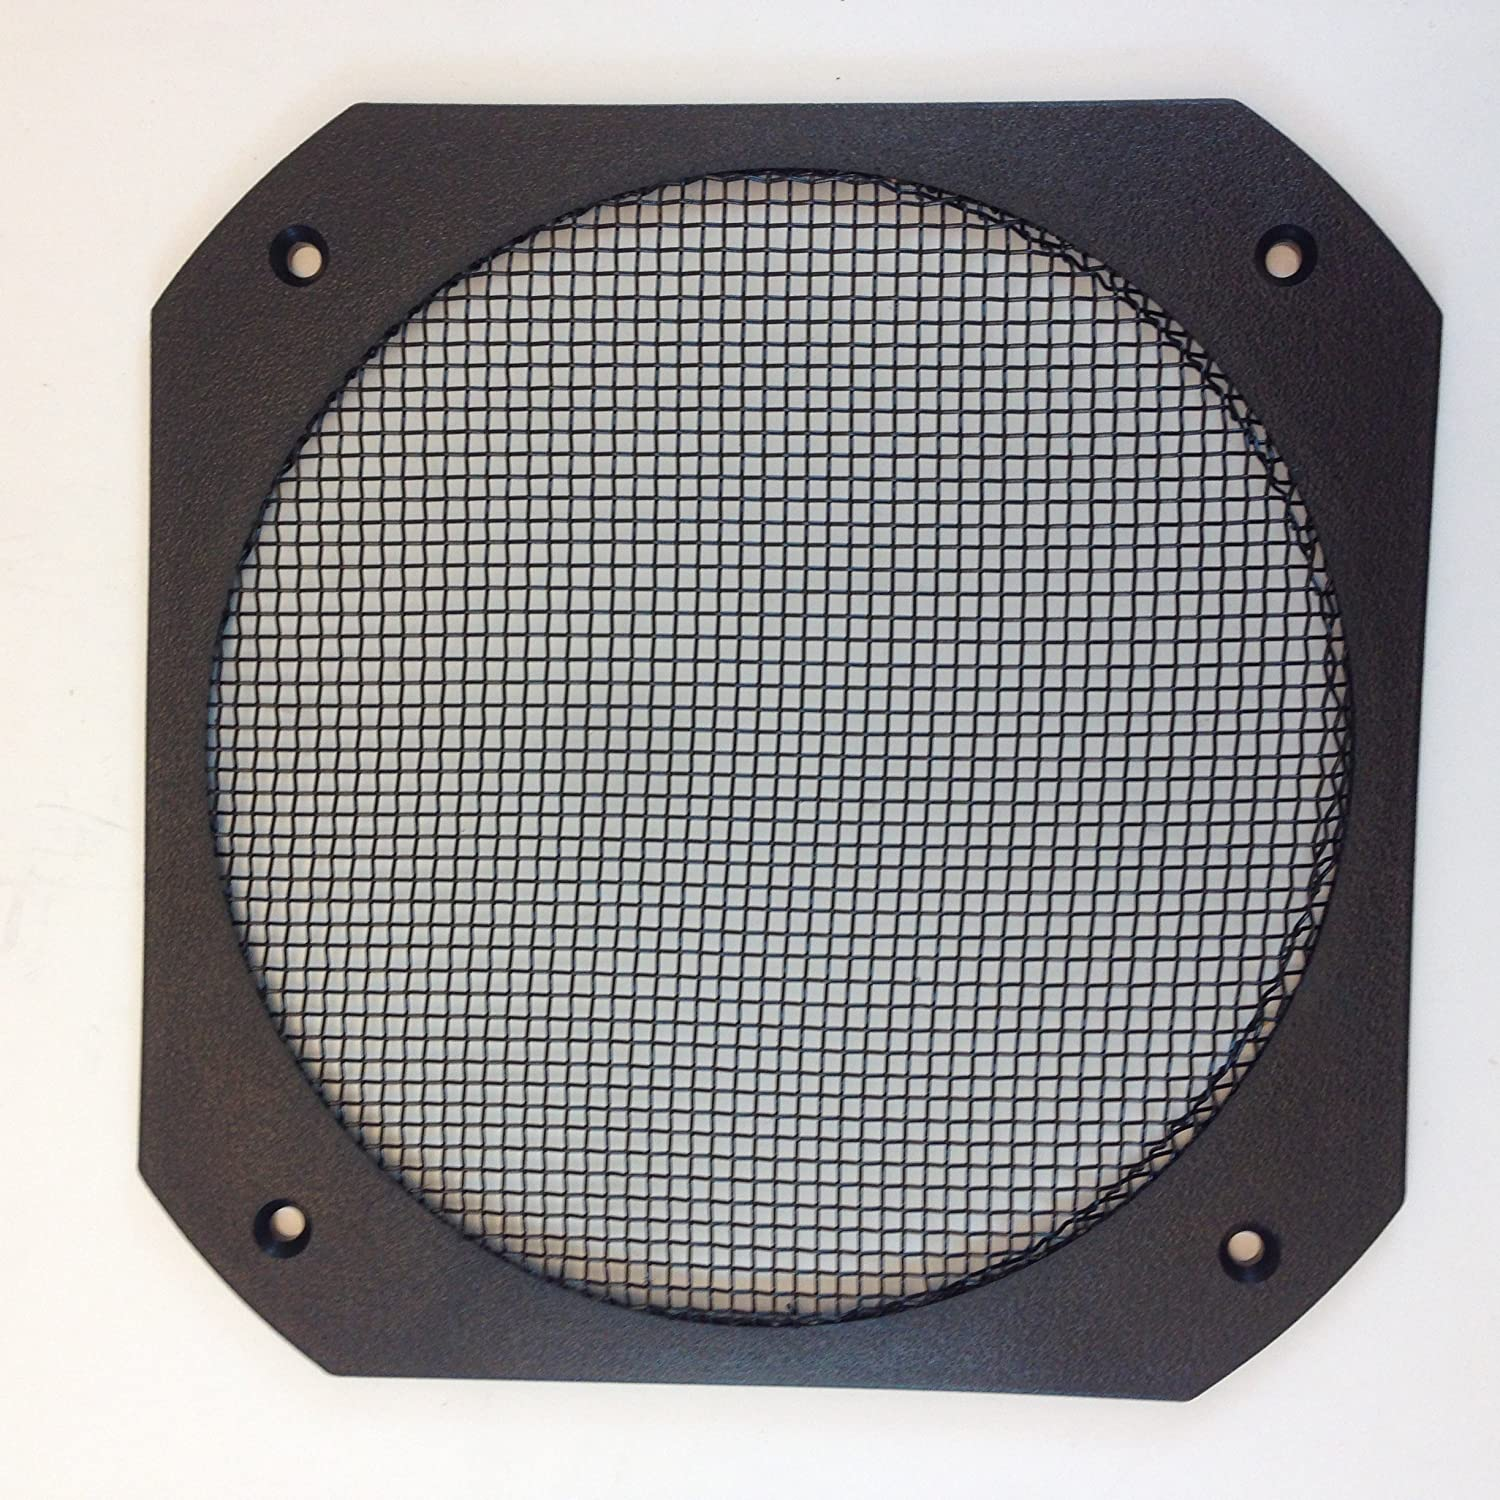 """SPEAKER GRILL 100-10/10"""" SQ. (COVERS UP TO A 100"""" HOLE) FLAT FOR FLUSH CUSTOM  LOOK!"""